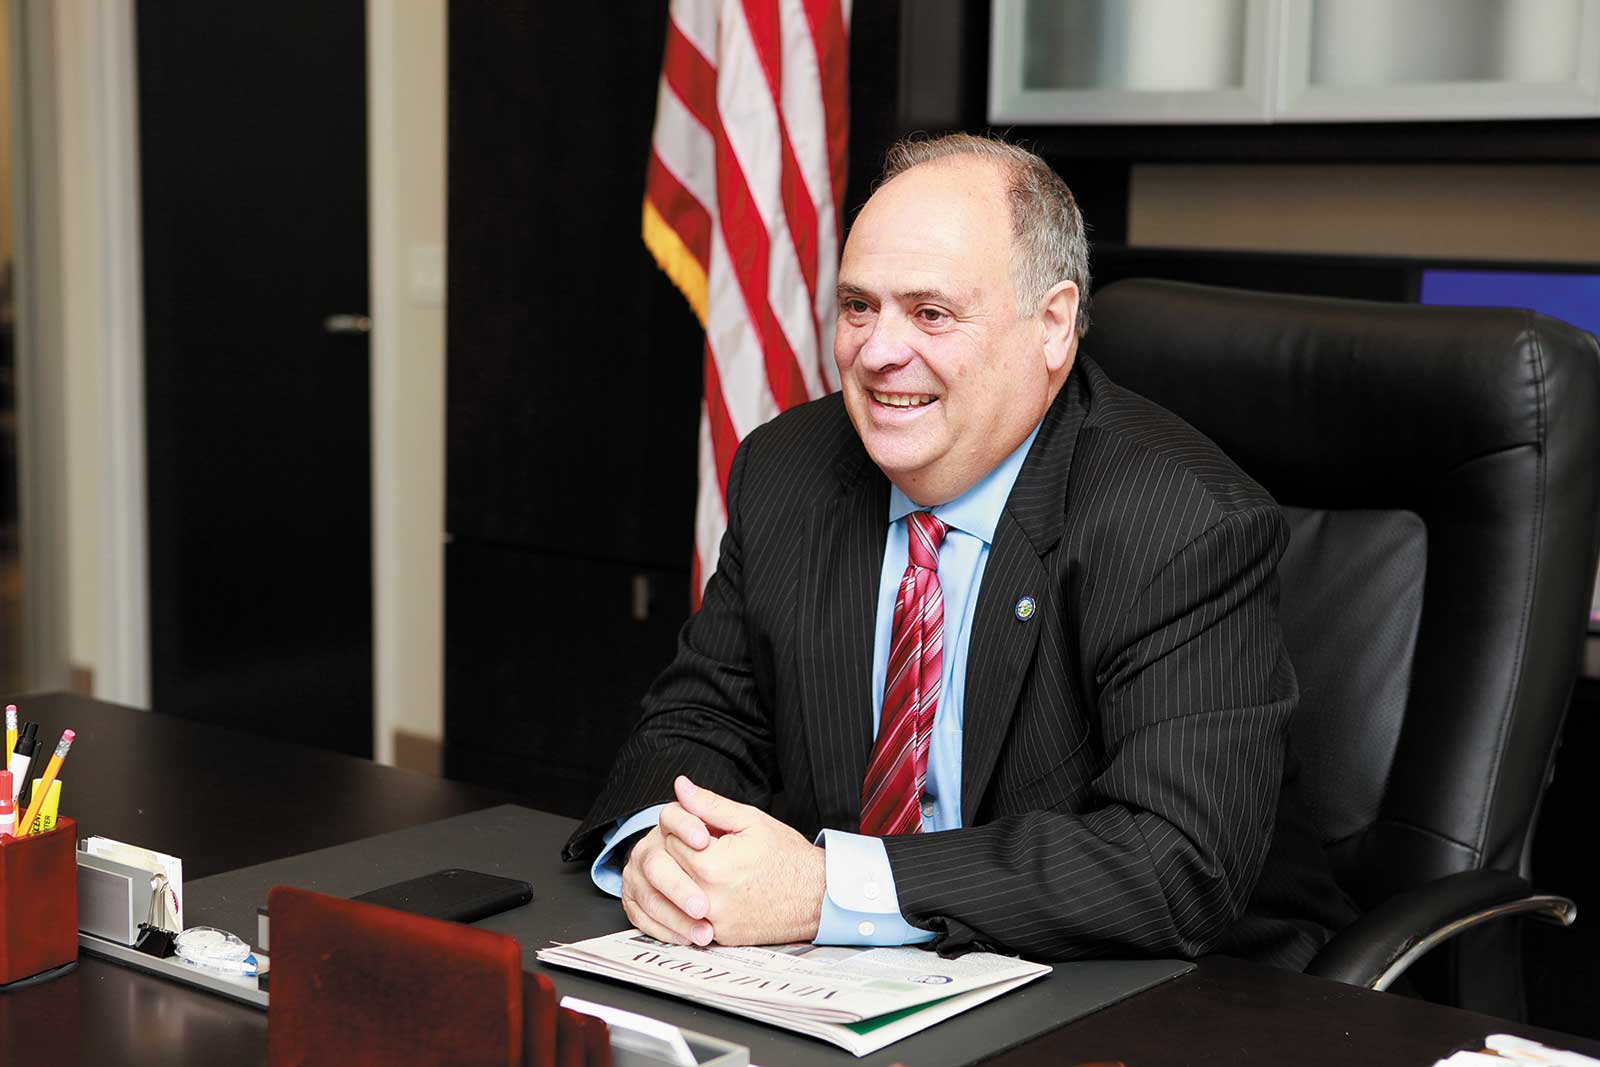 Juan Carlos Bermudez: Back in Doral mayor's job with plans for city upgrades